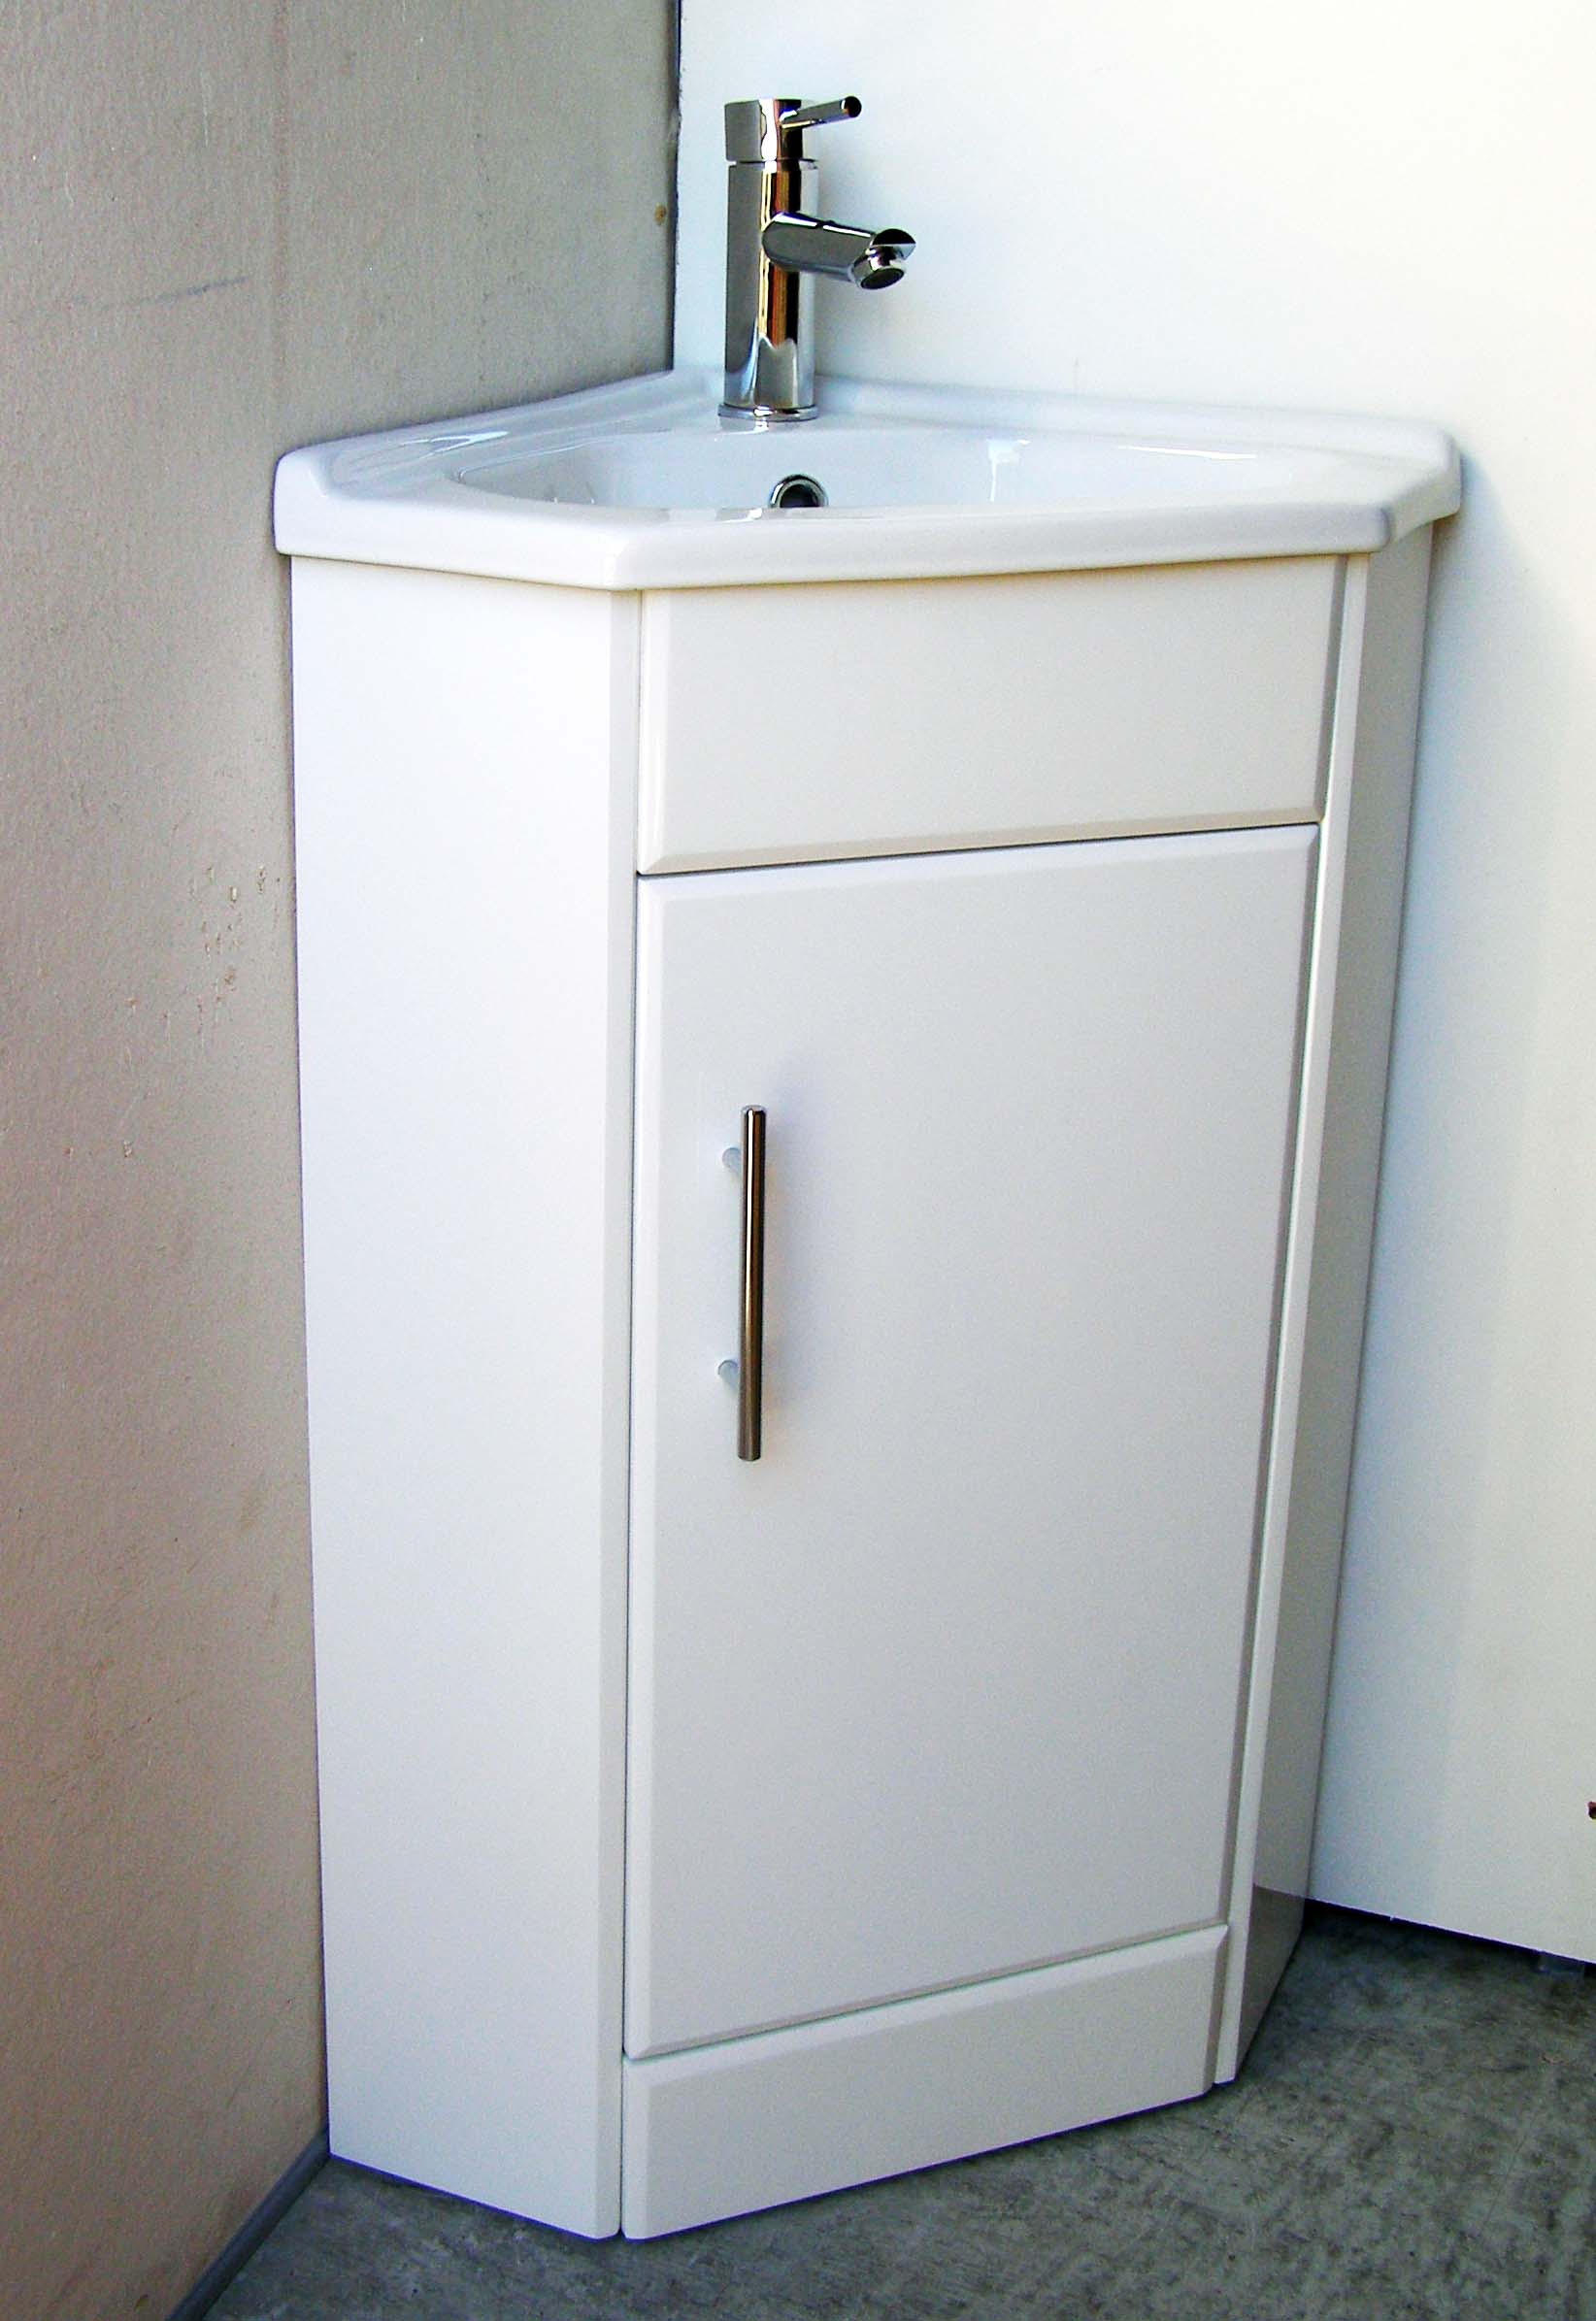 Corner vanity 400 400x400mm corner vanity with ceramic - Corner bathroom vanities for sale ...